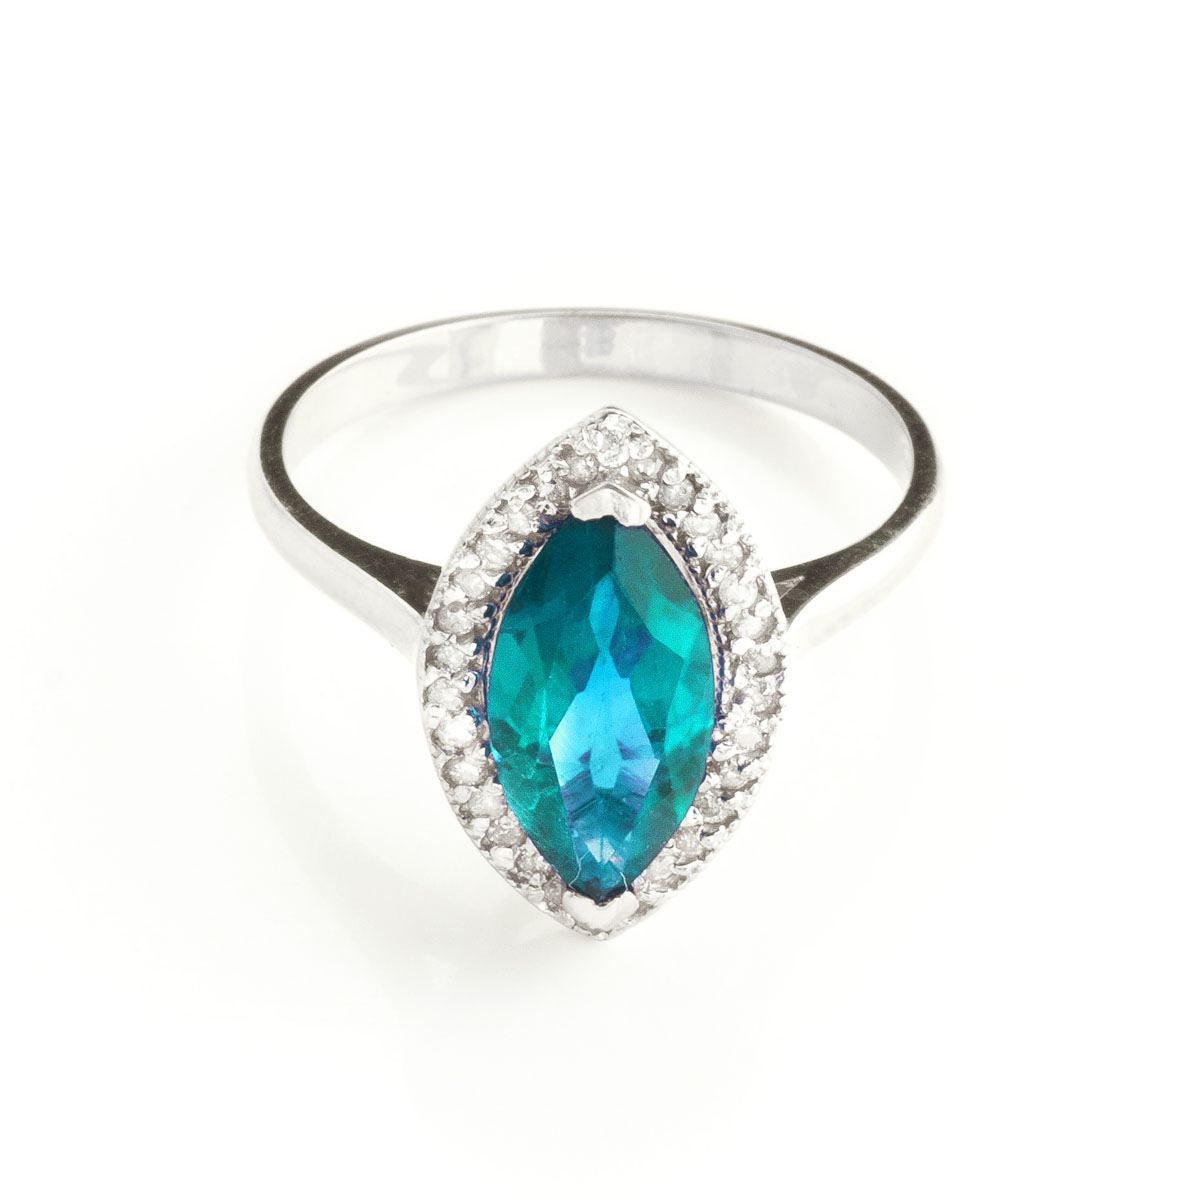 Blue Topaz Halo Ring 2.4 ctw in 18ct White Gold